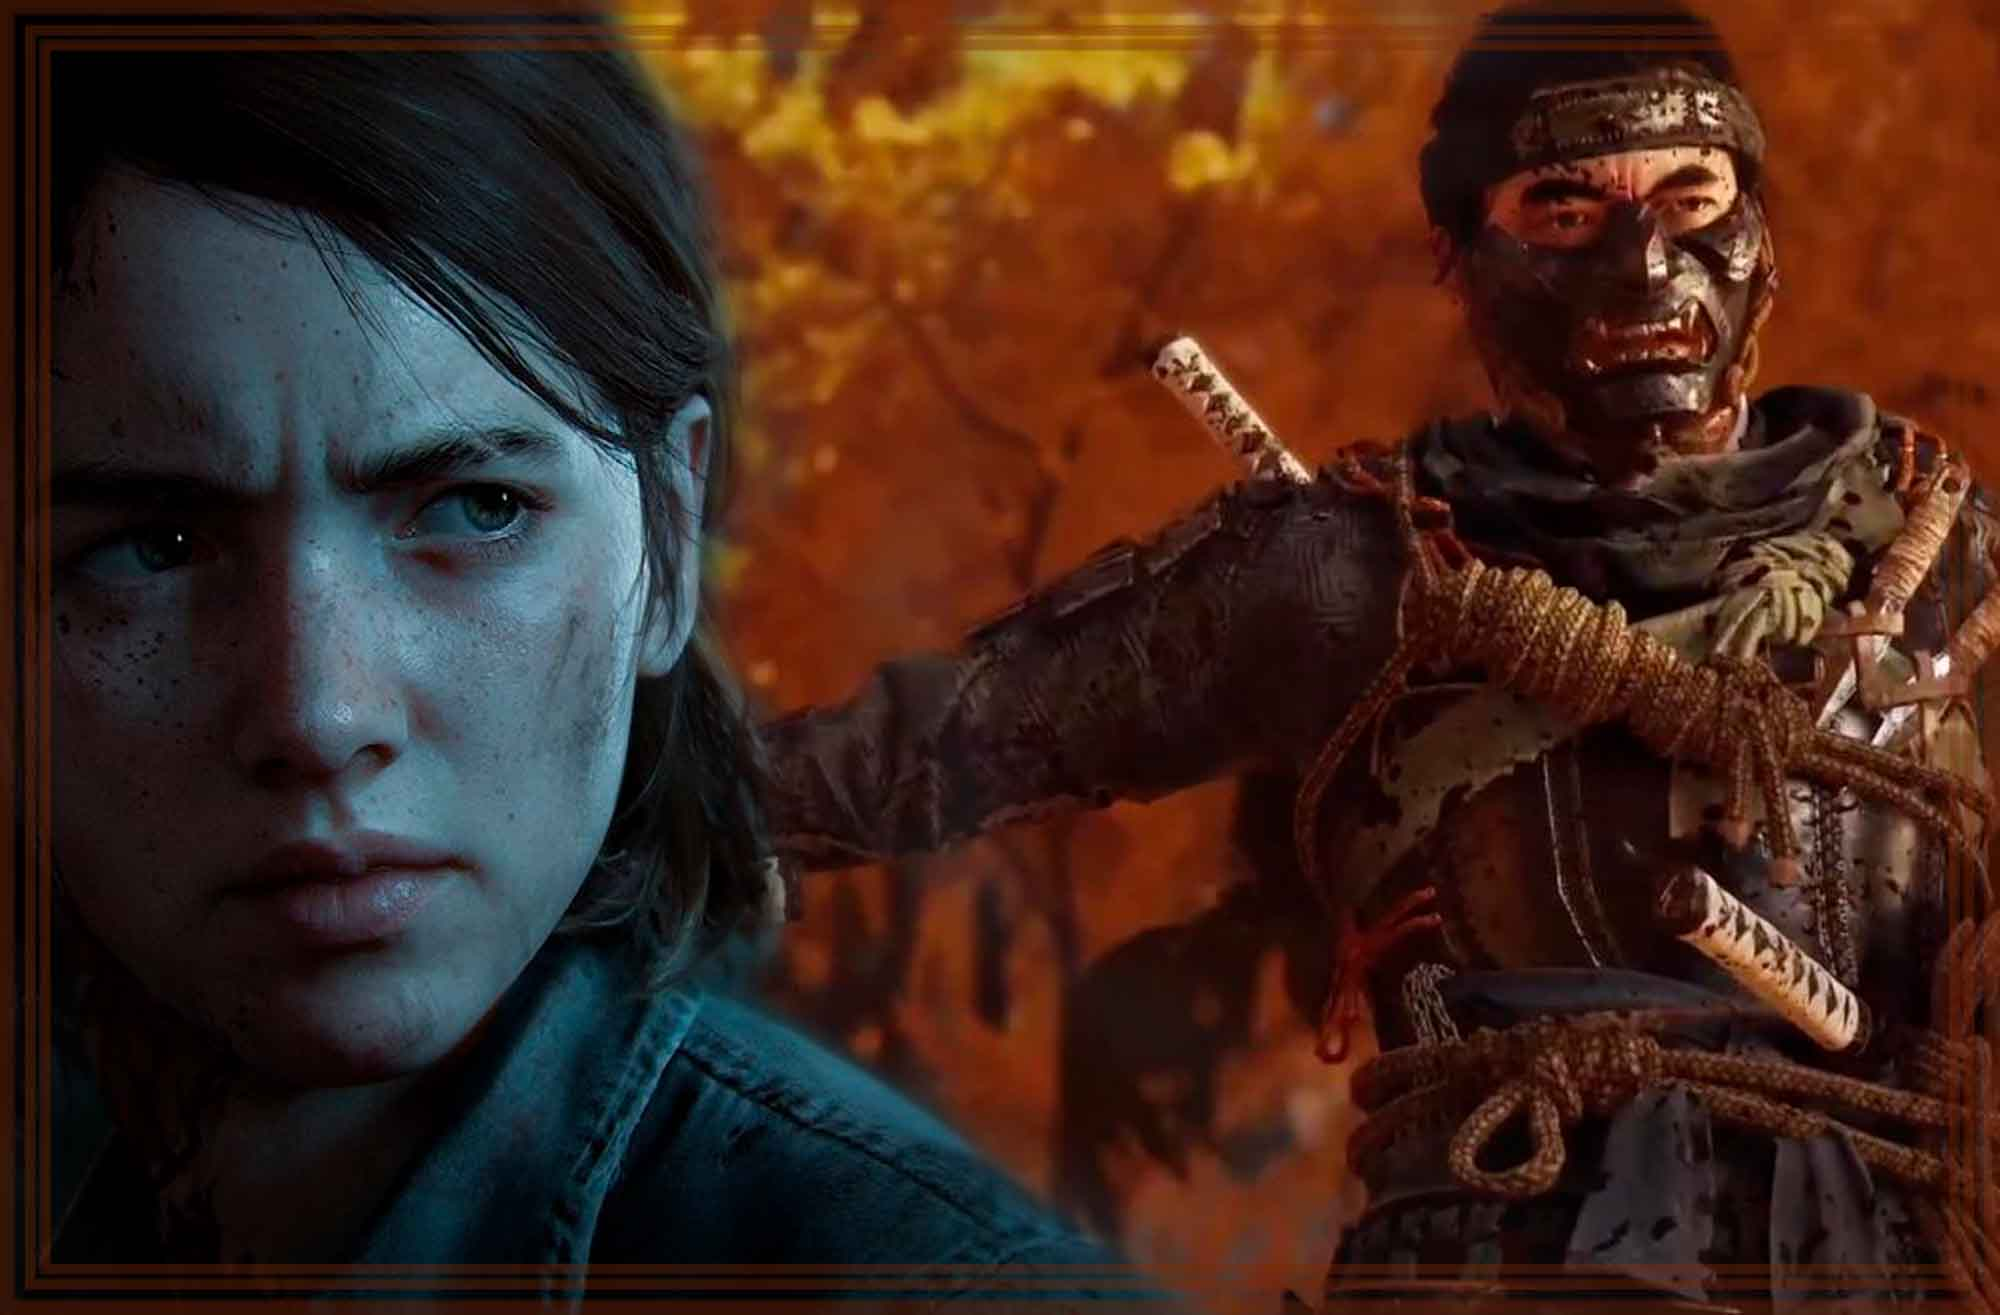 Estas son las fechas de lanzamiento de 'The Last of Us 2' y 'Ghost of Tsushima'